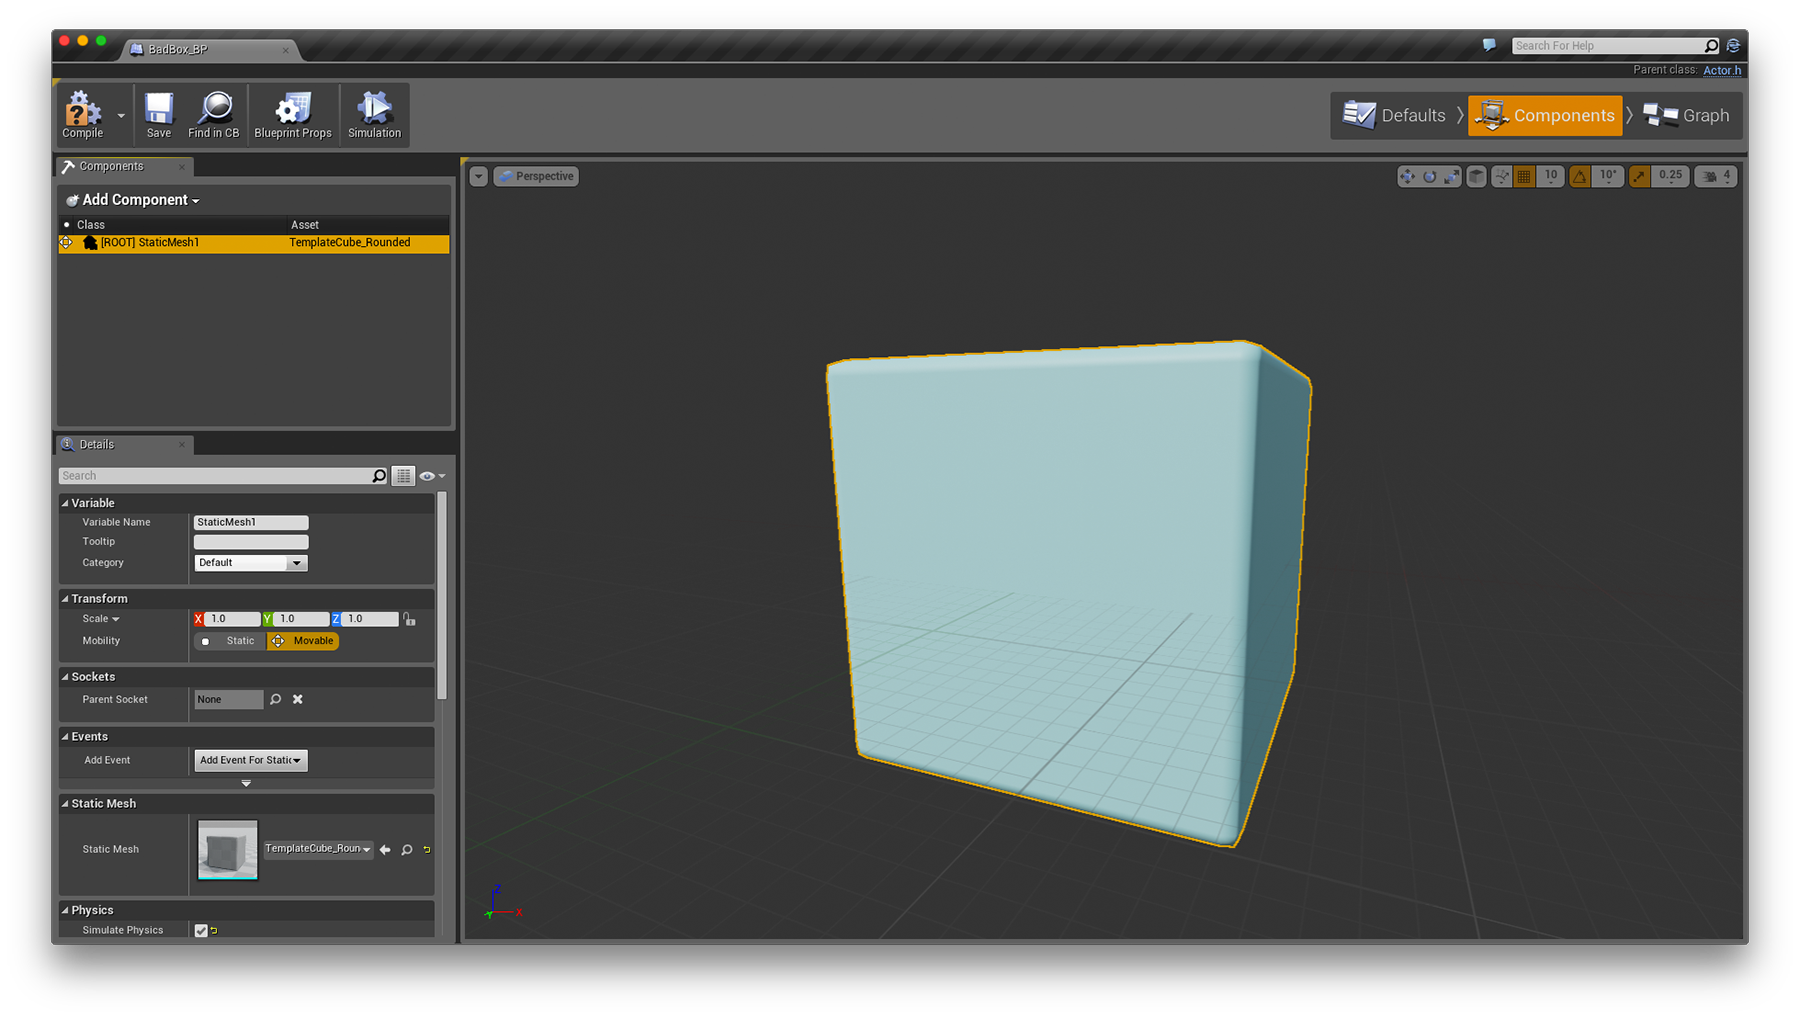 Disintegrating baddies dissolve effects in ue4 components tab of blueprint editor after adding cube malvernweather Image collections